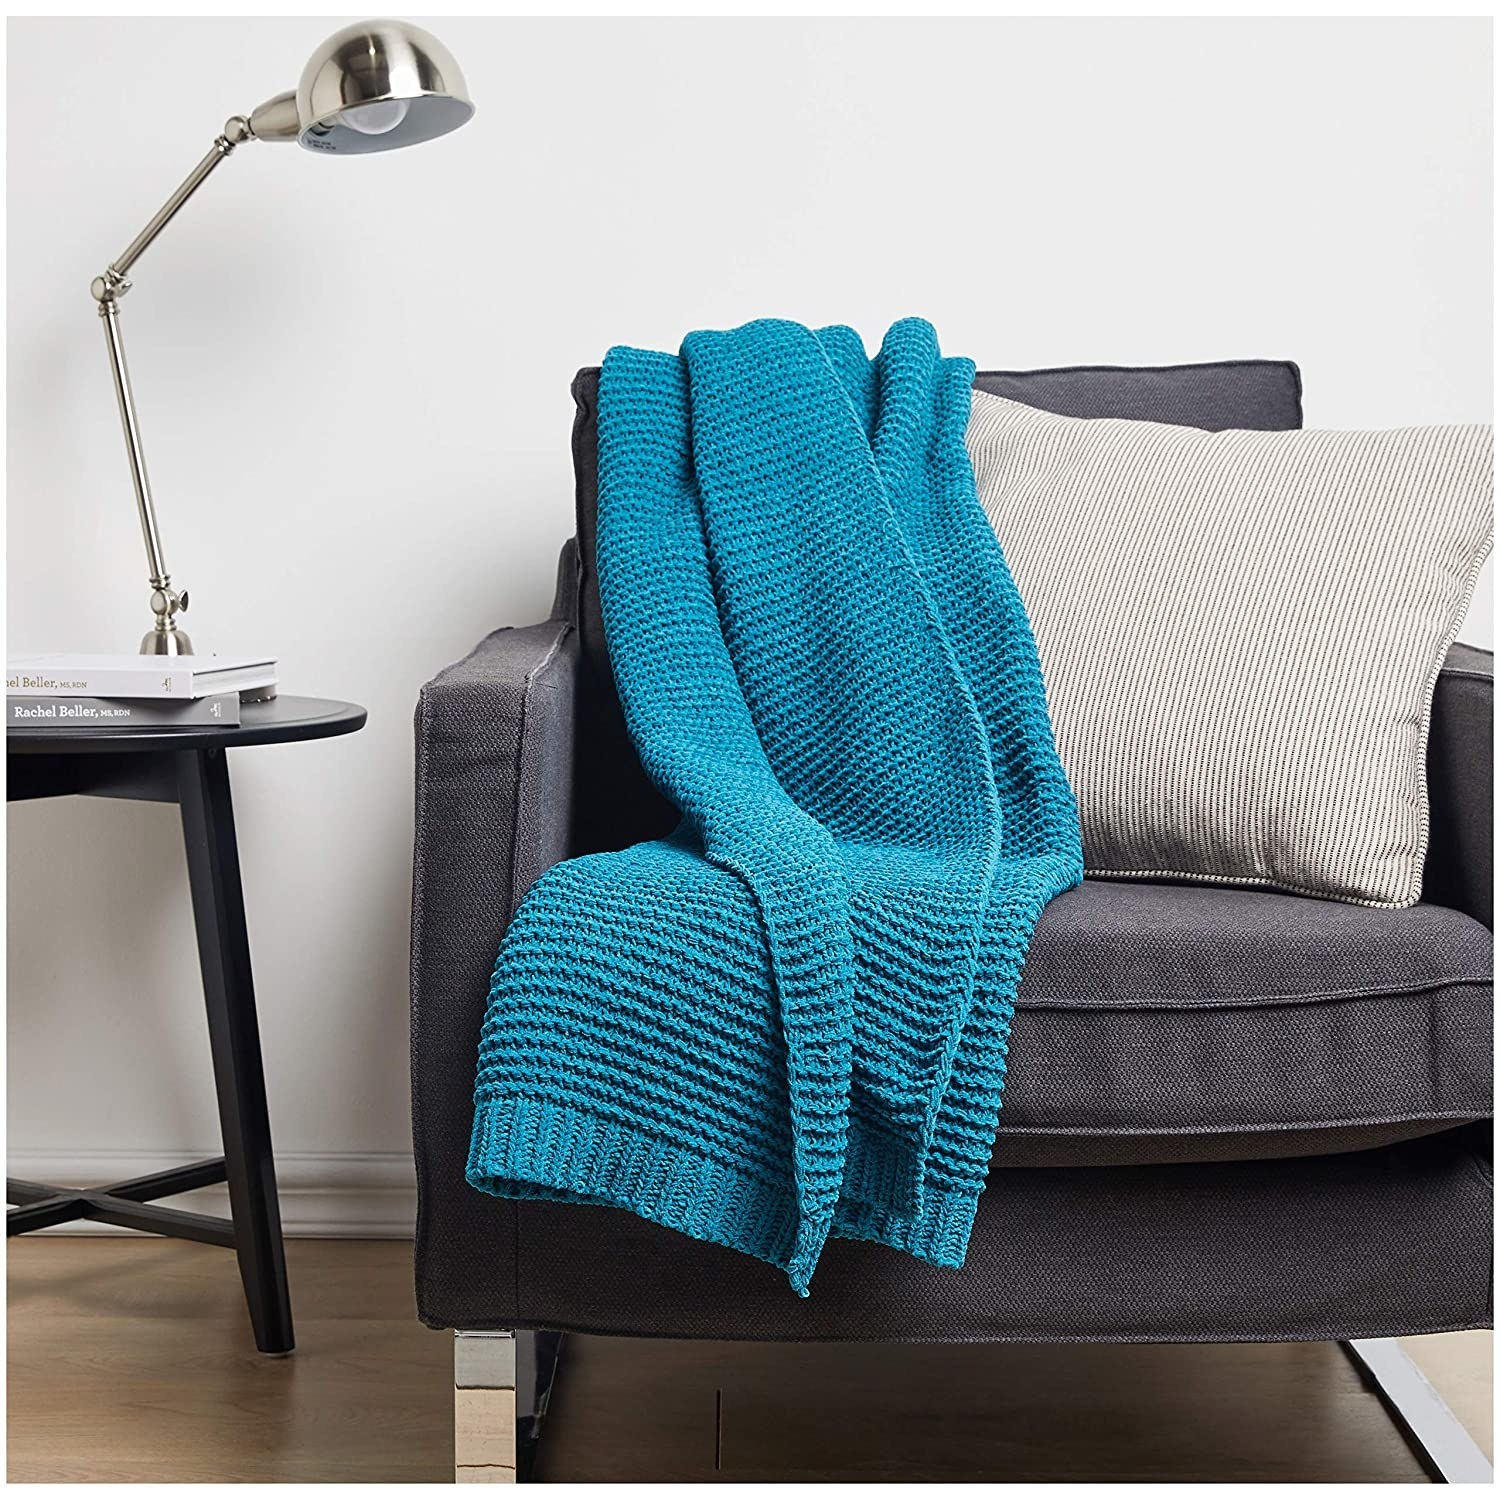 The teal chenille blanket draped on a grey sofa.